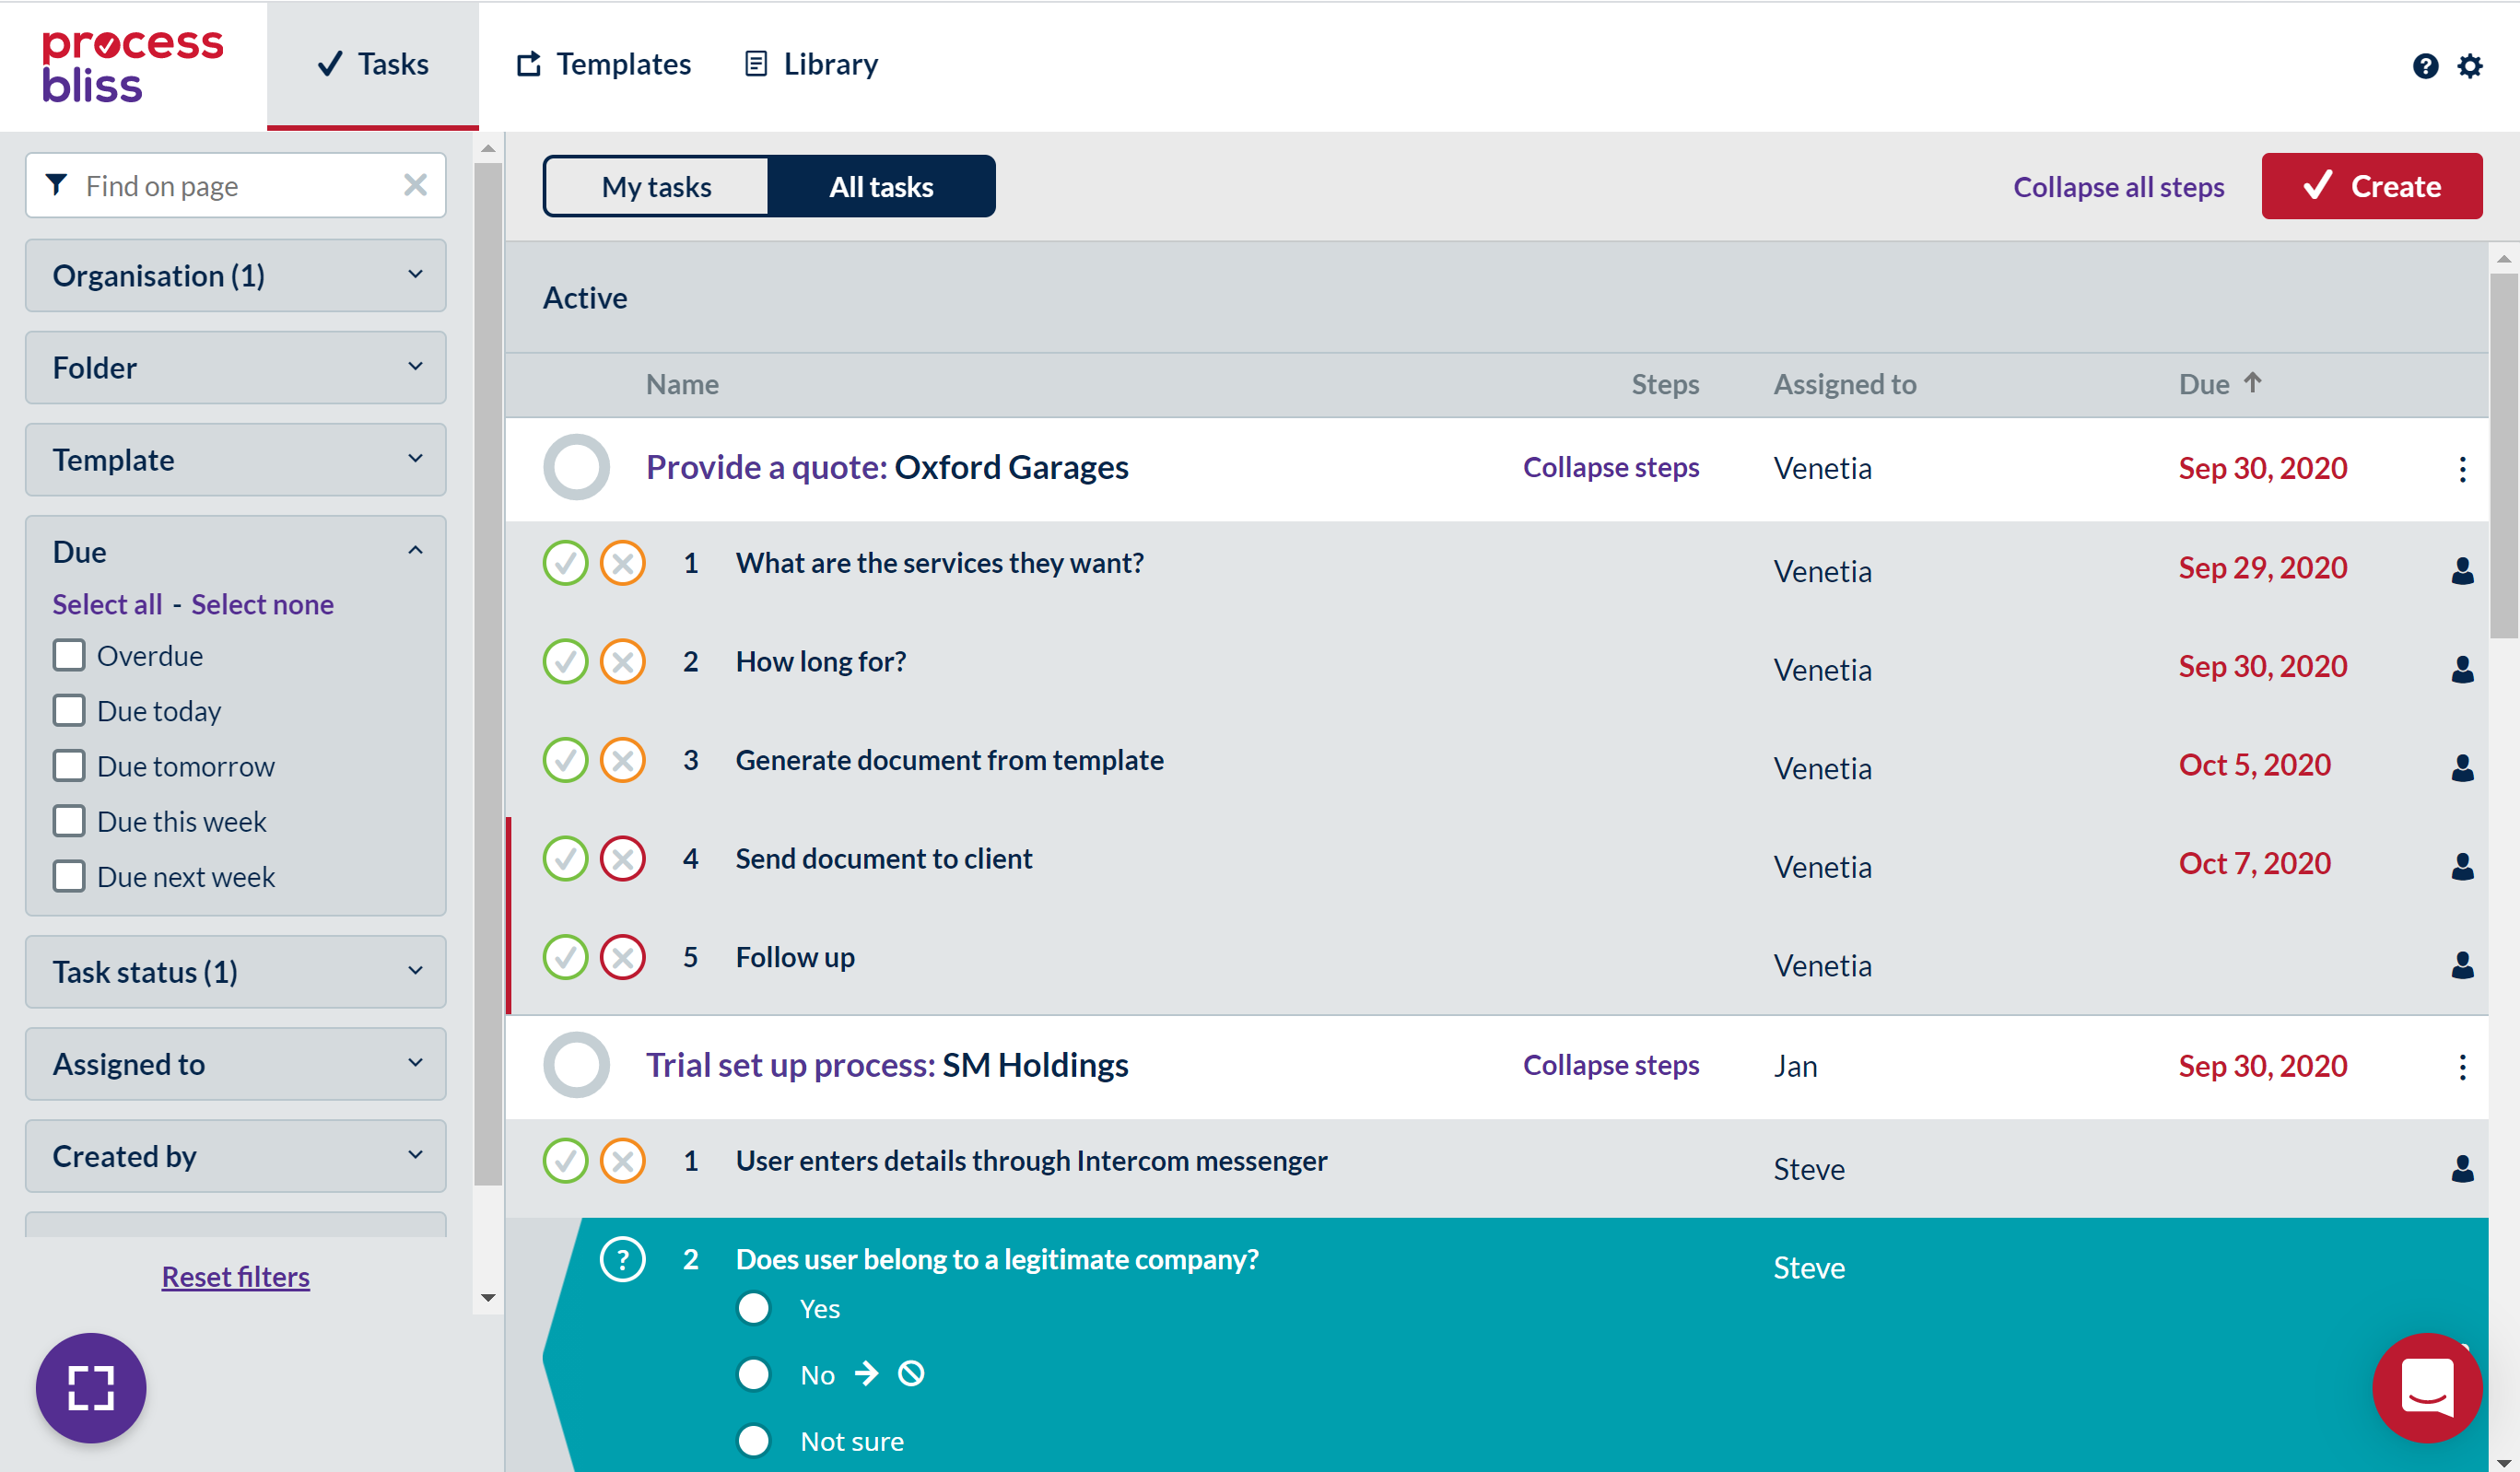 Screenshot showing expanded steps on the Process Bliss All Tasks screen